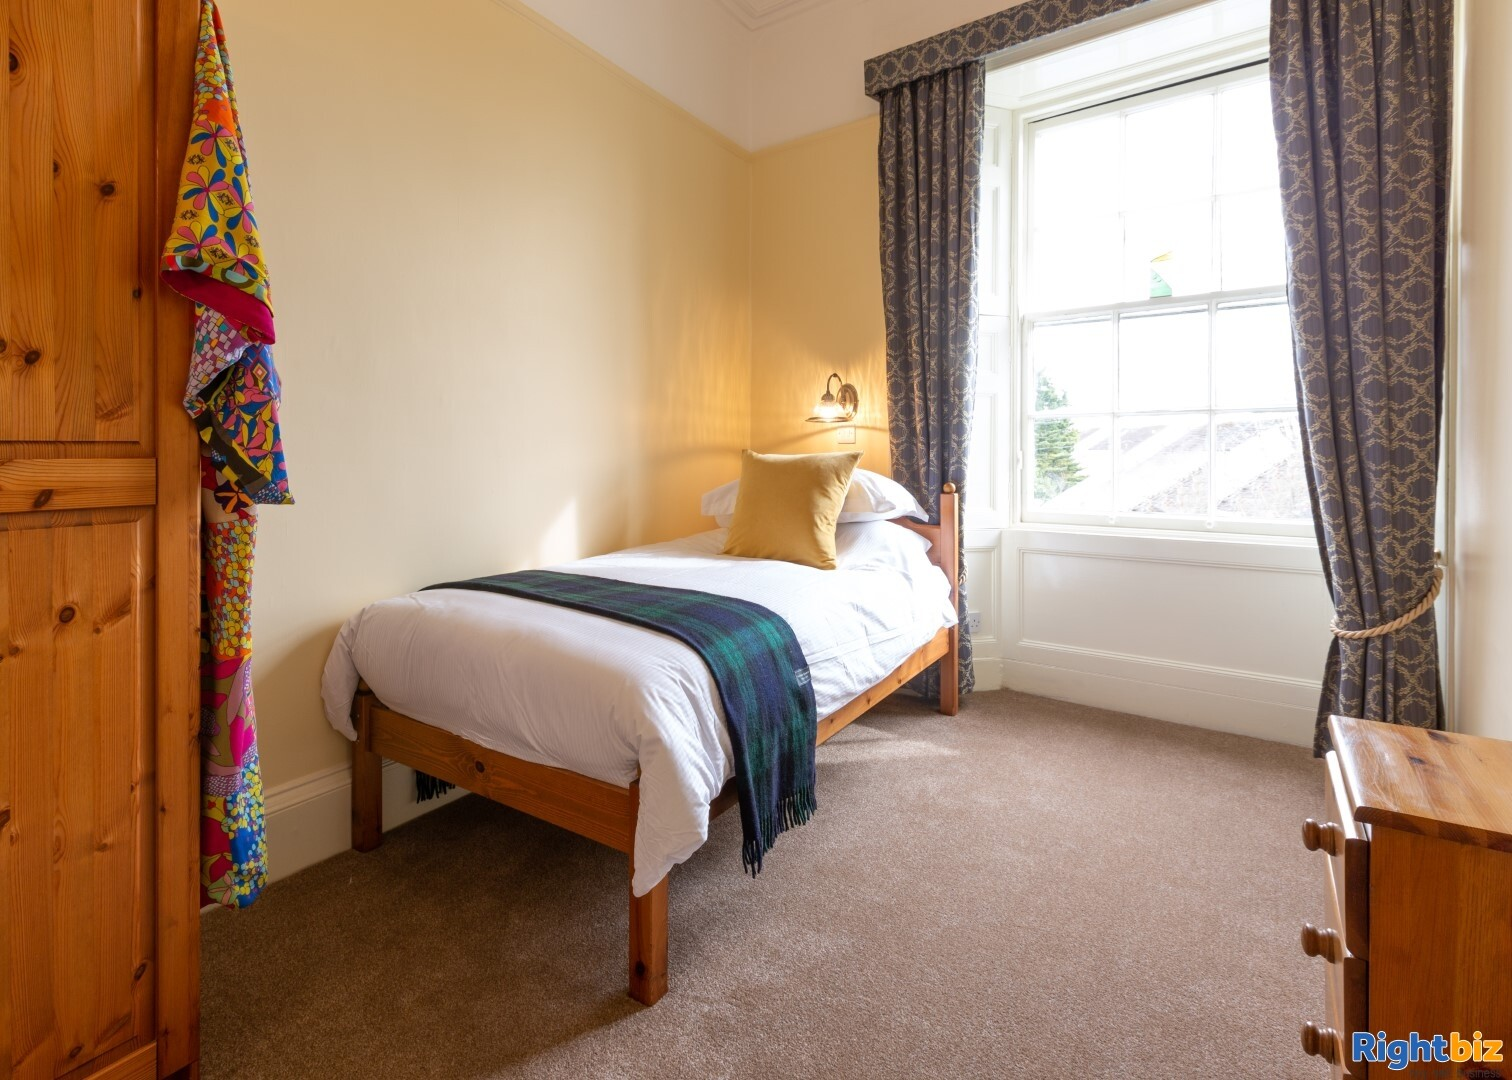 A stunning recently refurbished small Hotel with Restaurant in Kirkcudbright - Image 11